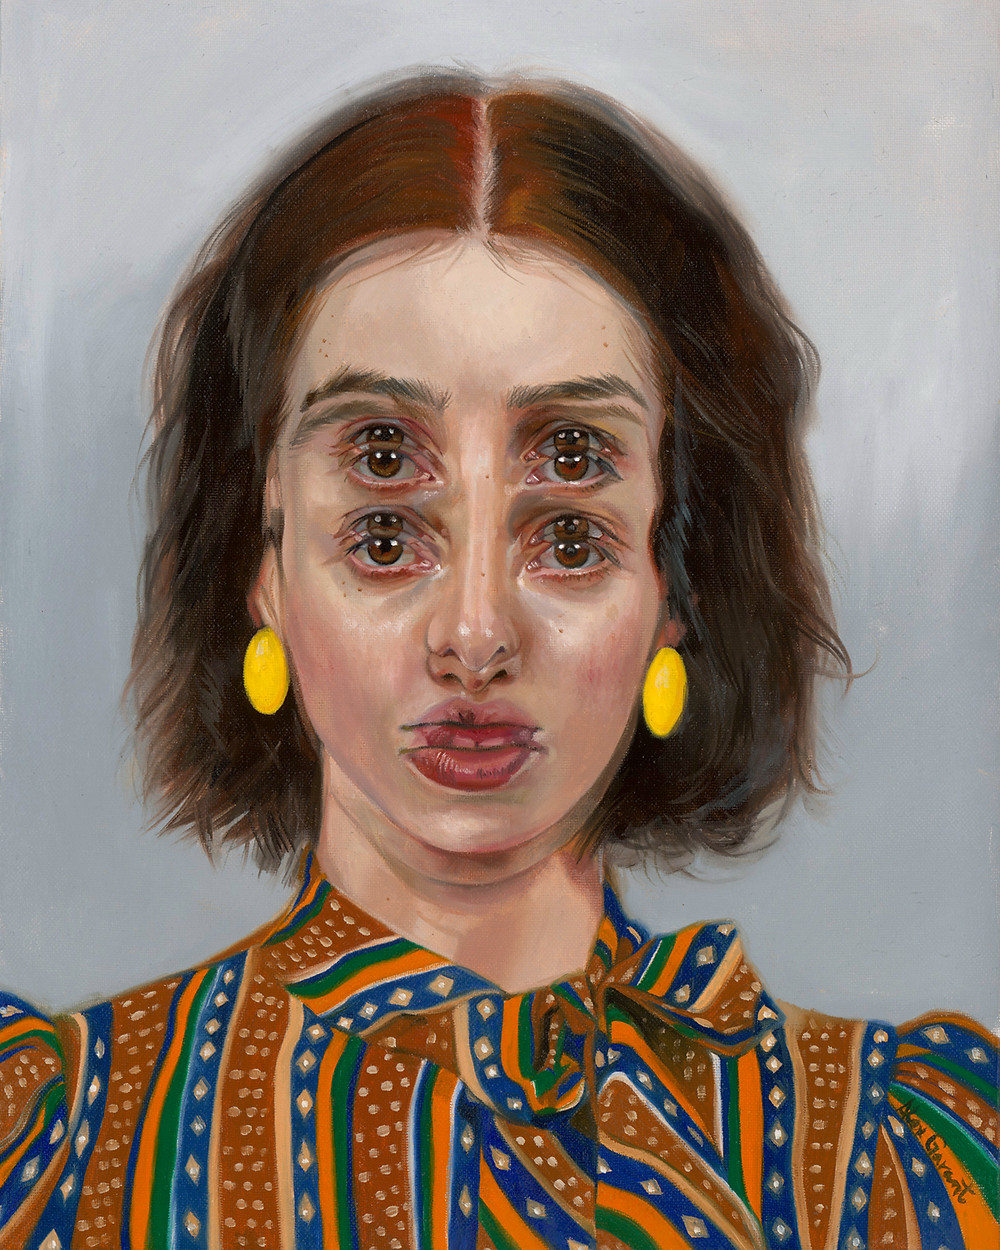 Alex Garant__The Booth_16x20_1650_oiloncanvas